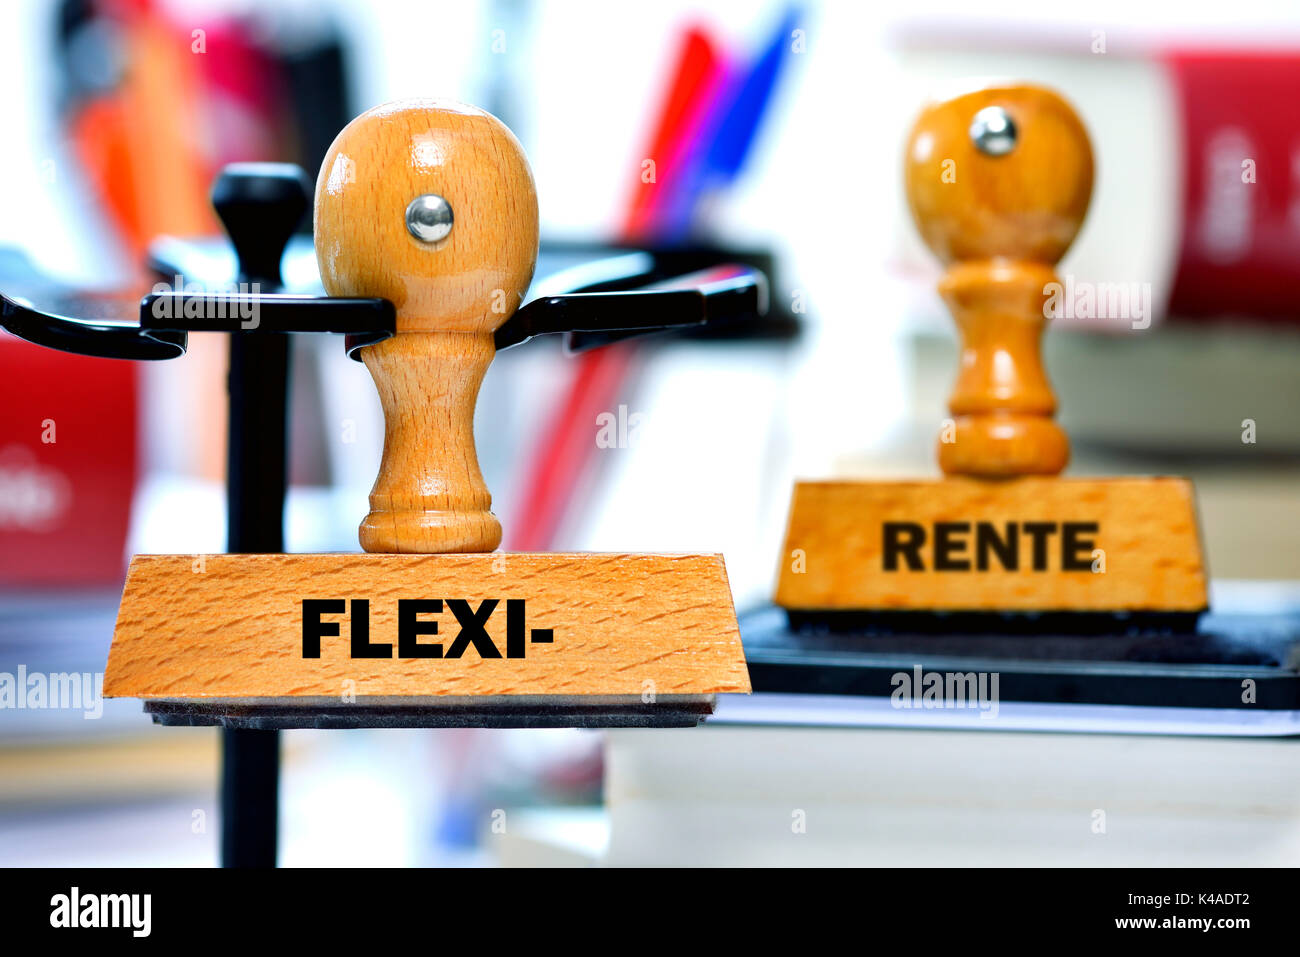 Flexible Rente Briefmarken Stockbild